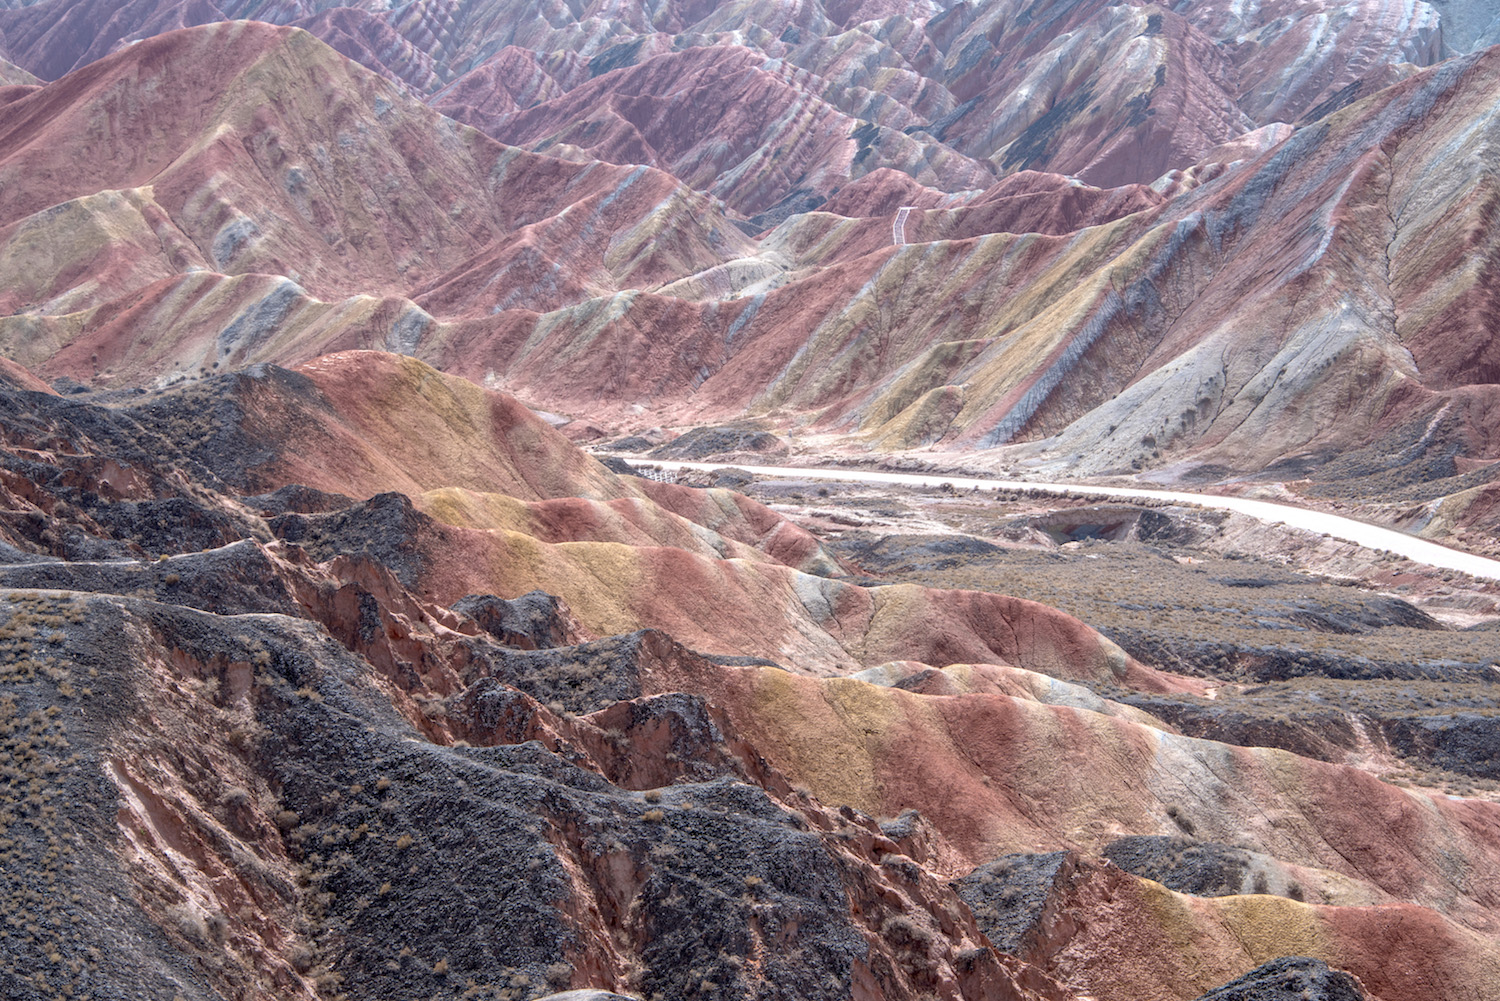 Danxia Landform in Gansu, China